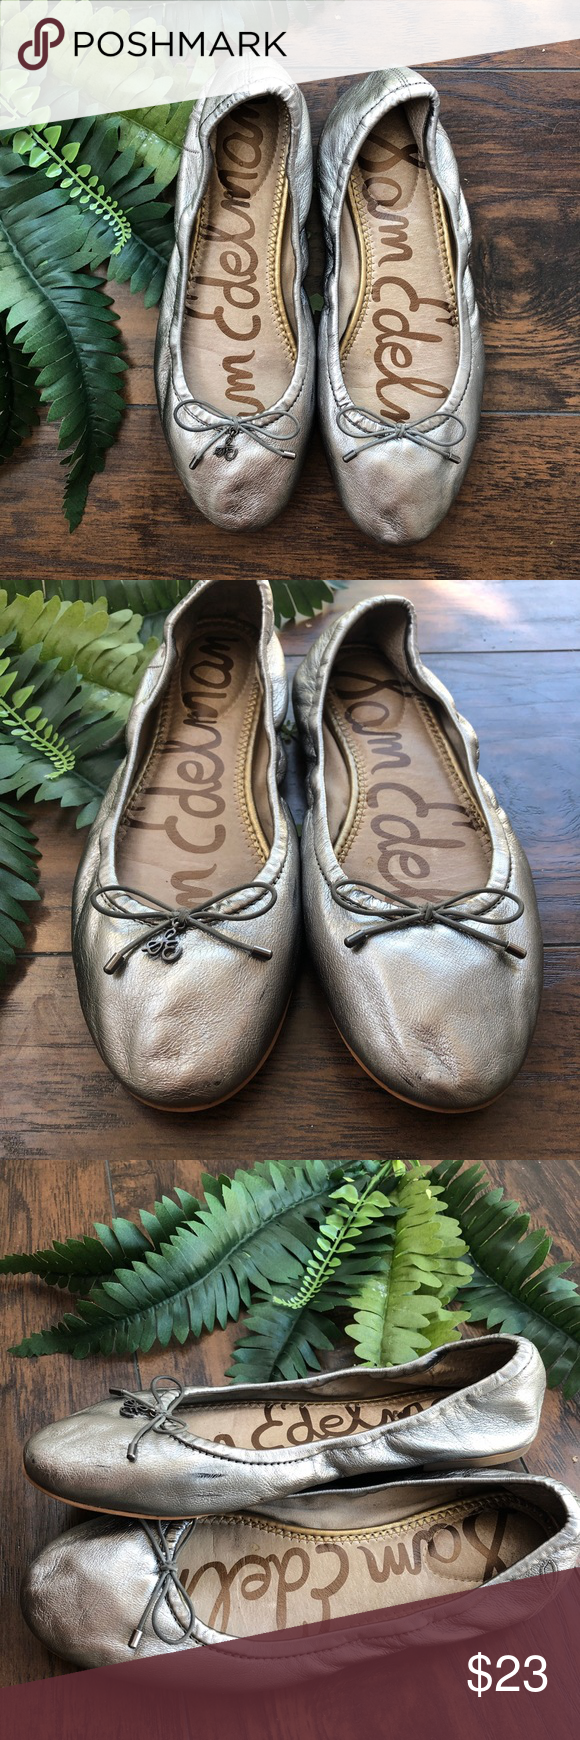 33ccea36b Sam Edelman Felicia Ballet Flat Soft Silver Size 8 With a charm-adorned bow  accent